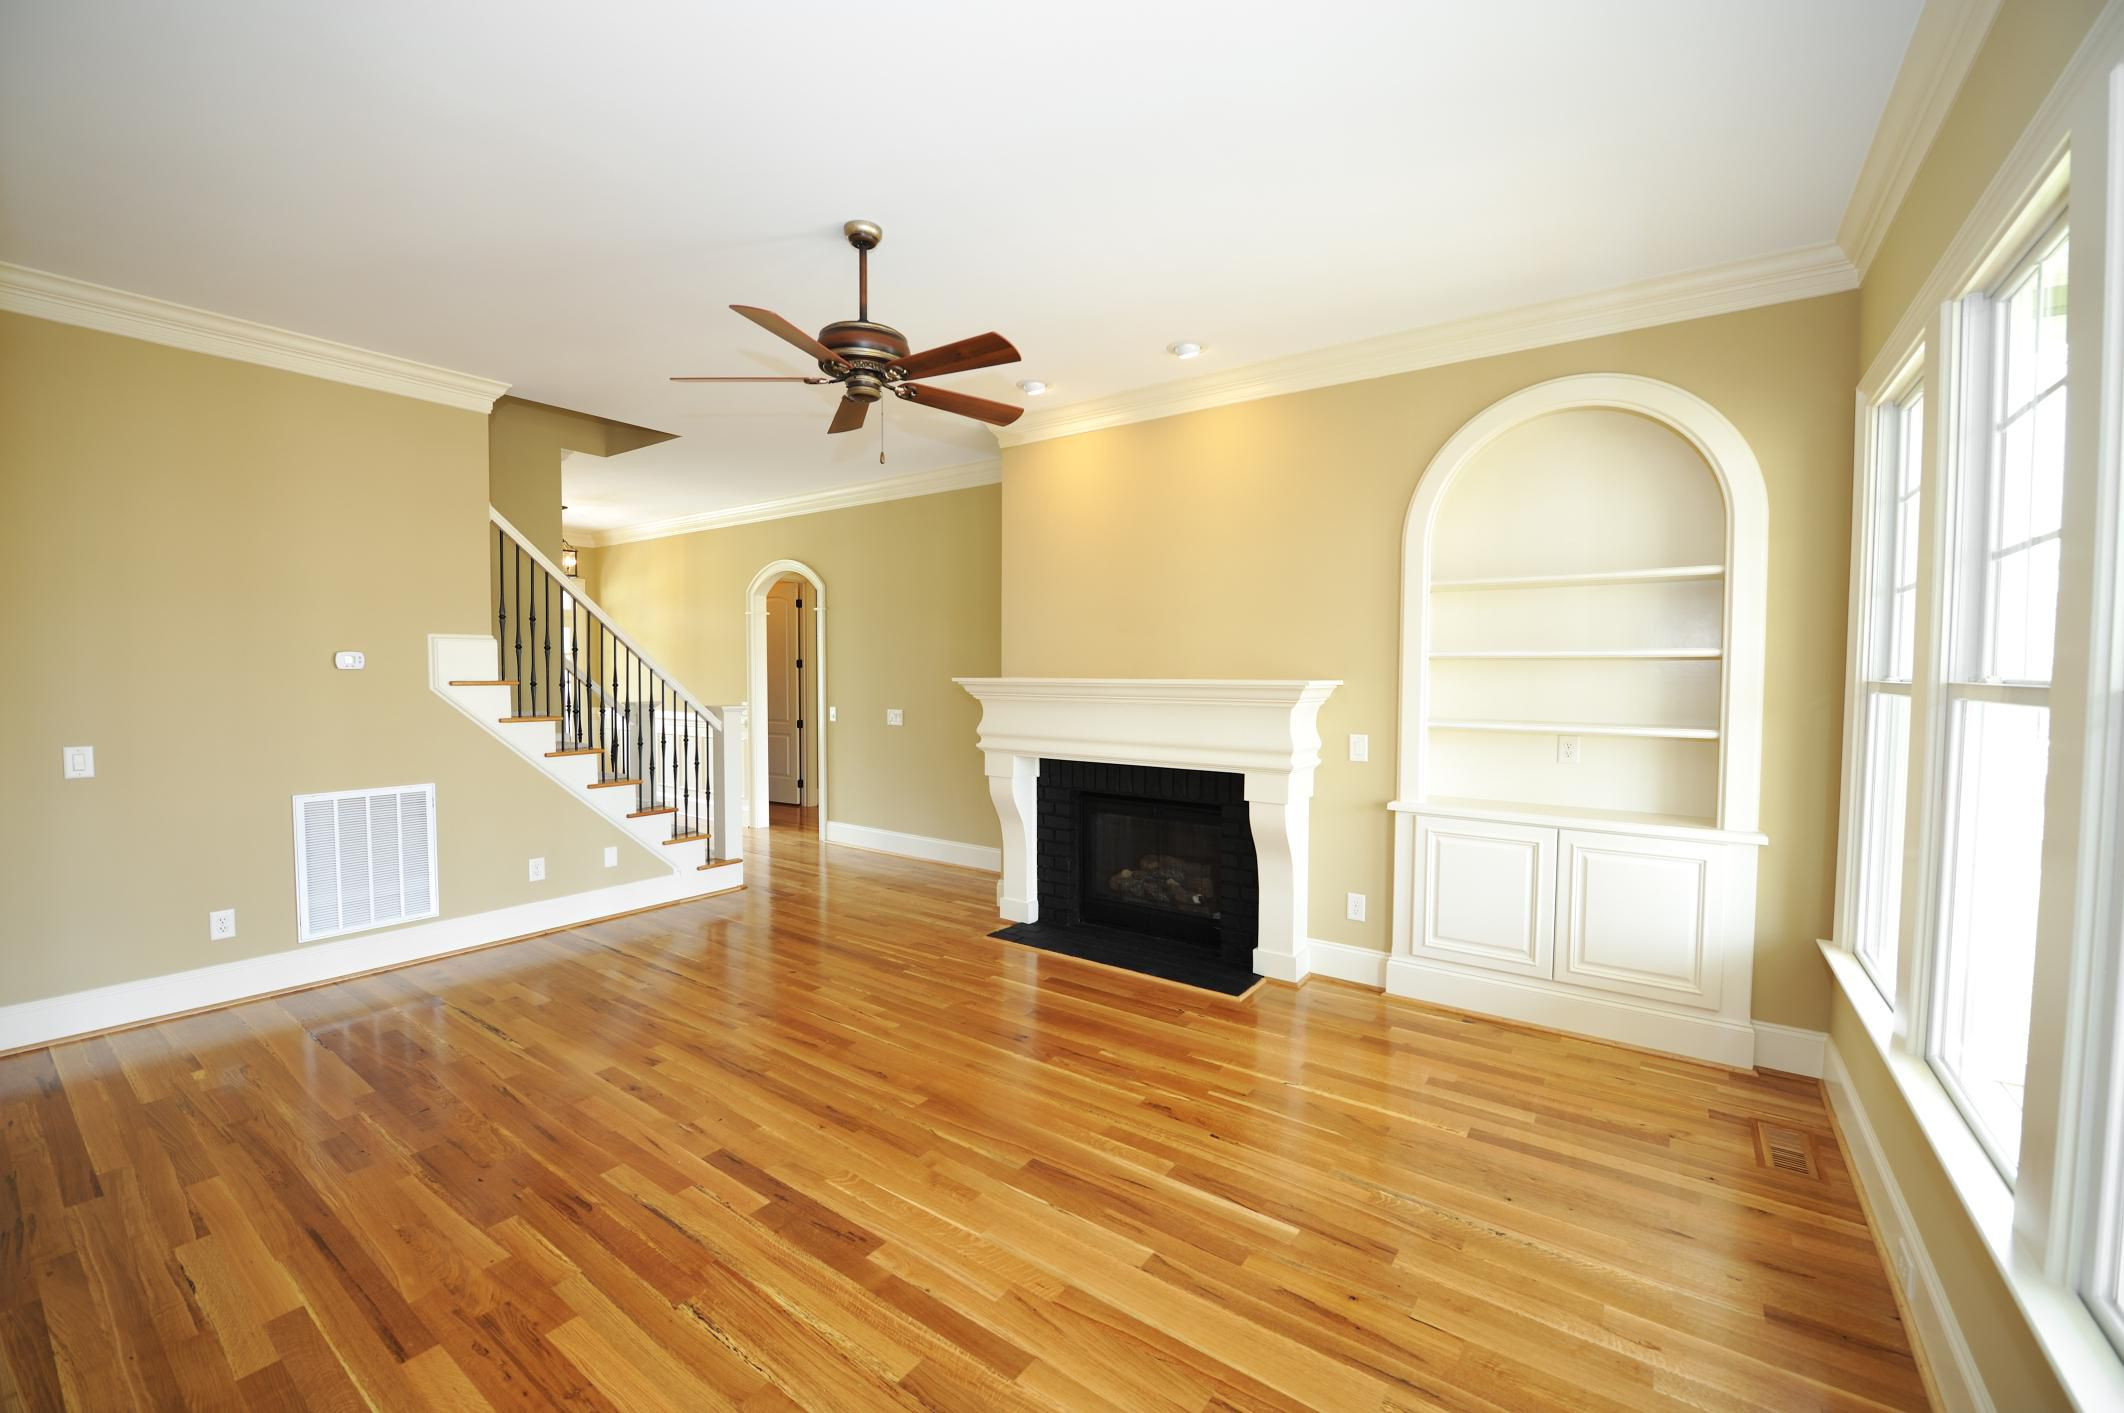 2 1 4 maple hardwood flooring unfinished of solid and engineered wood flooring within 157328869 56a4a2ac5f9b58b7d0d7ef49